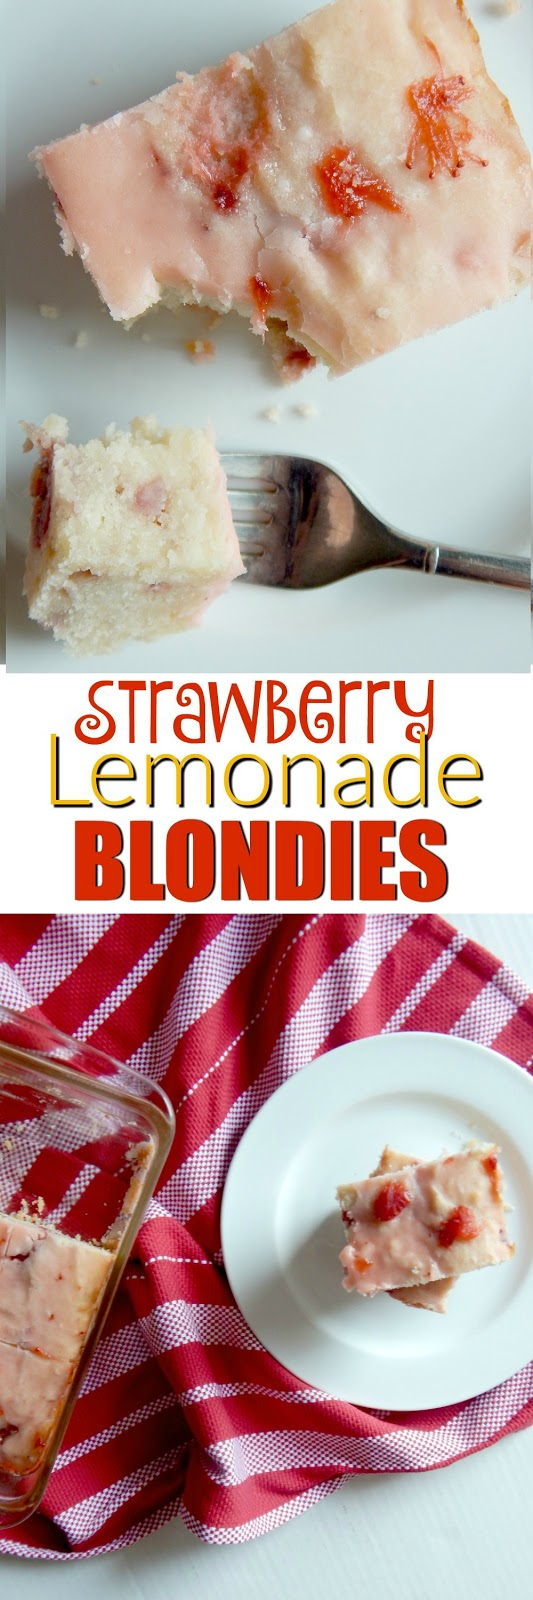 strawberry lemonade blondies